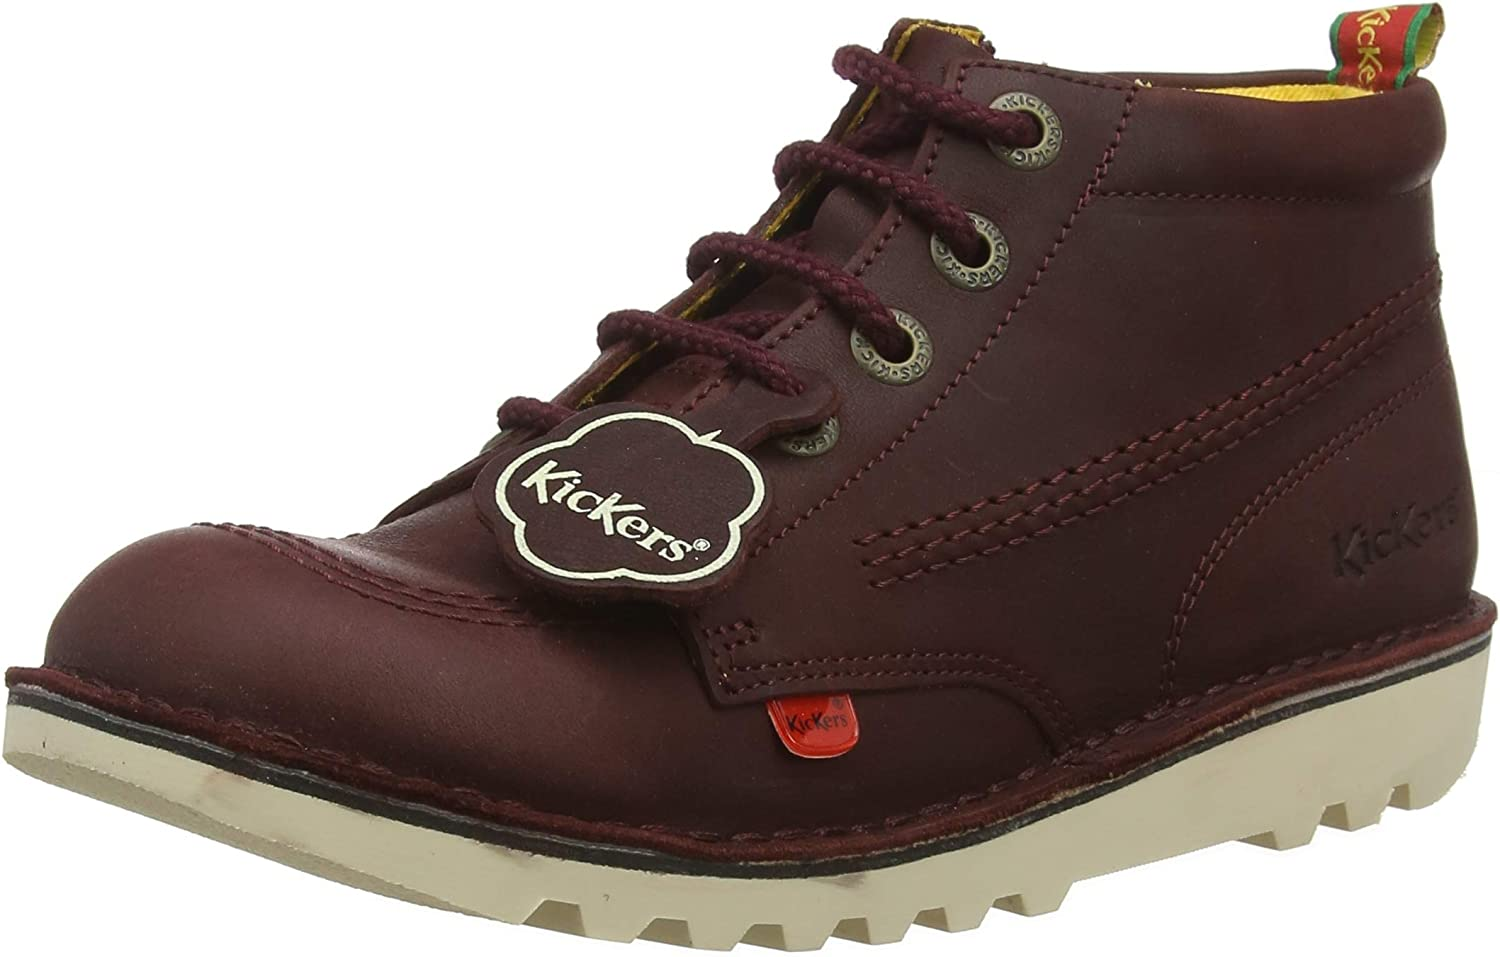 Kickers Men's Ankle 70% OFF Outlet Dallas Mall Classic Boots